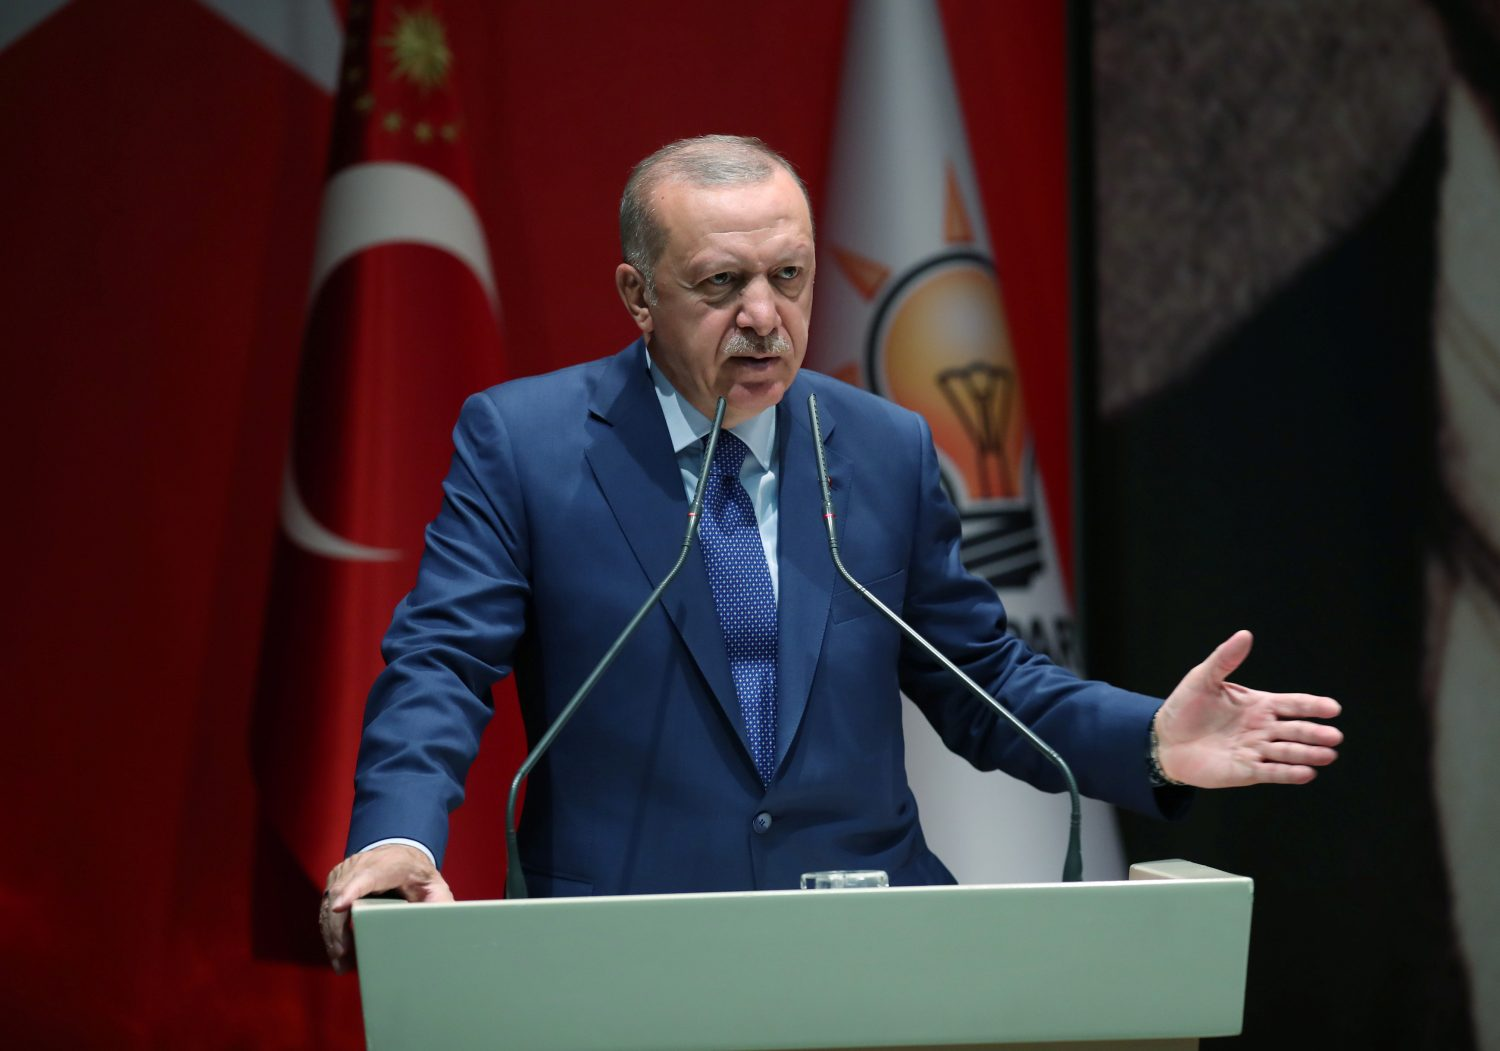 Turkish President Tayyip Erdogan speaks during a meeting of his ruling AK Party in Ankara, Turkey, September 5, 2019. Murat Kula/Presidential Press Office/Handout via REUTERS